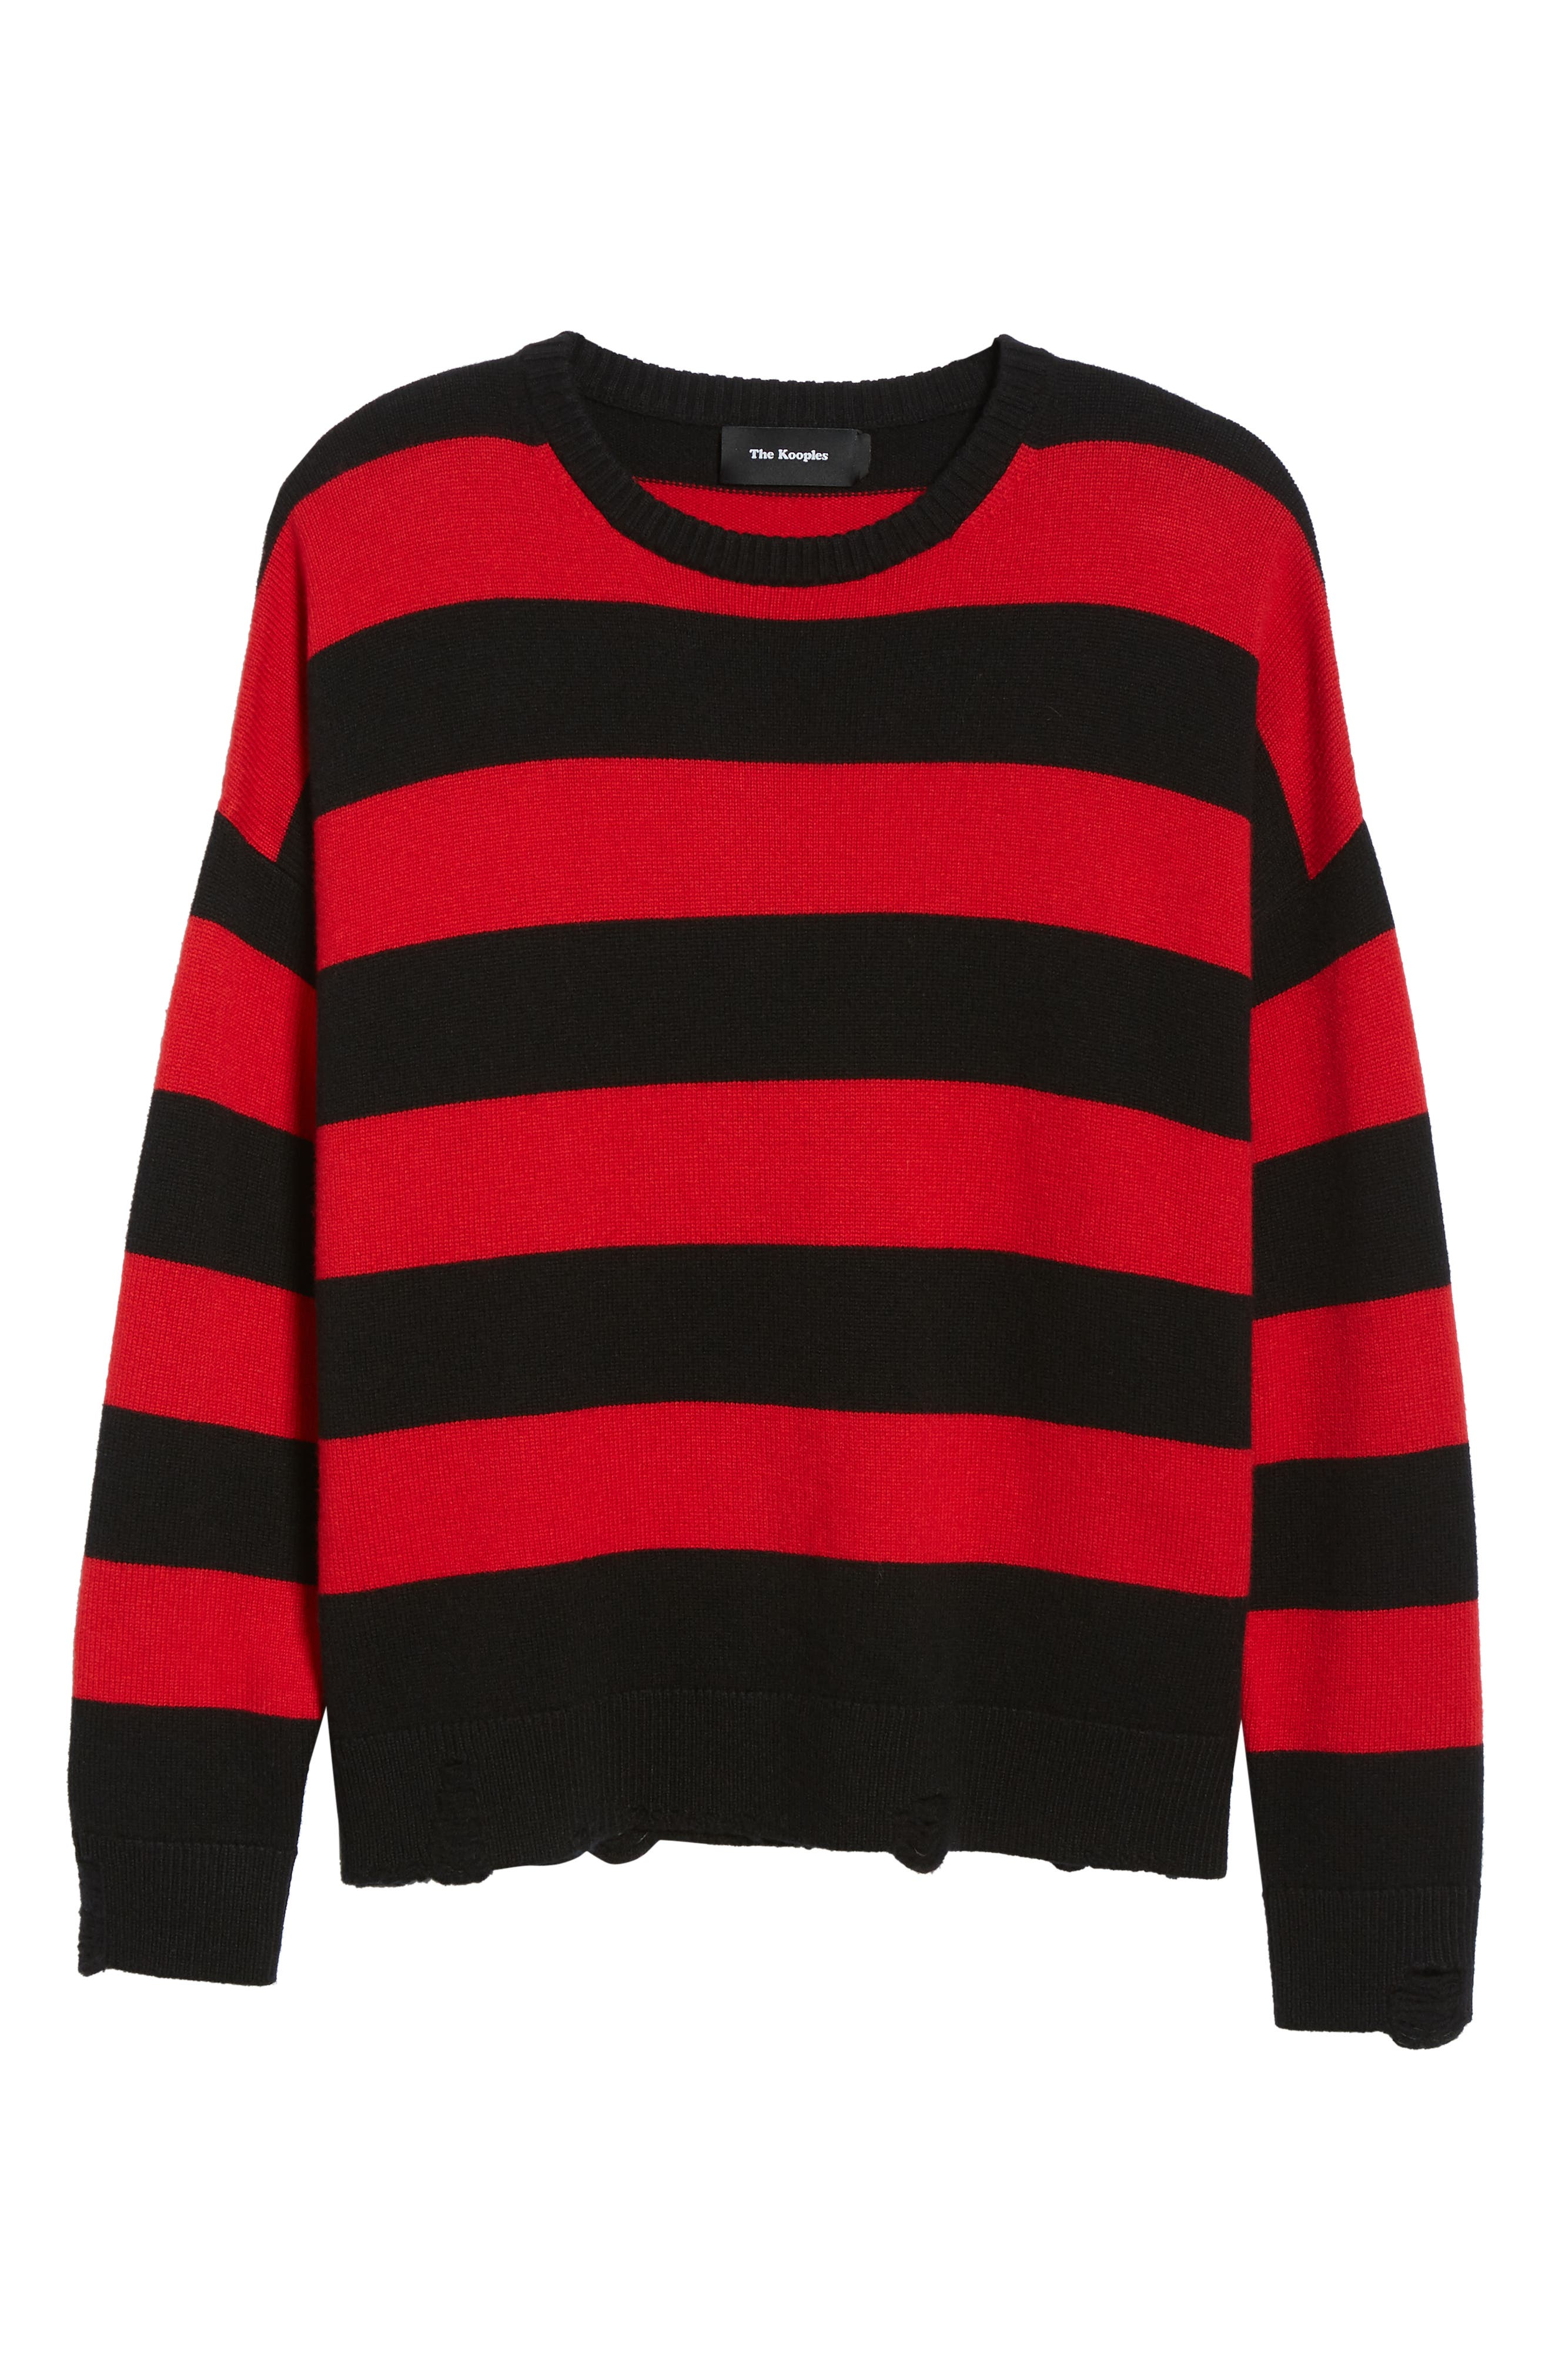 Shredded Stripe Sweater,                             Alternate thumbnail 6, color,                             RED/ BLACK